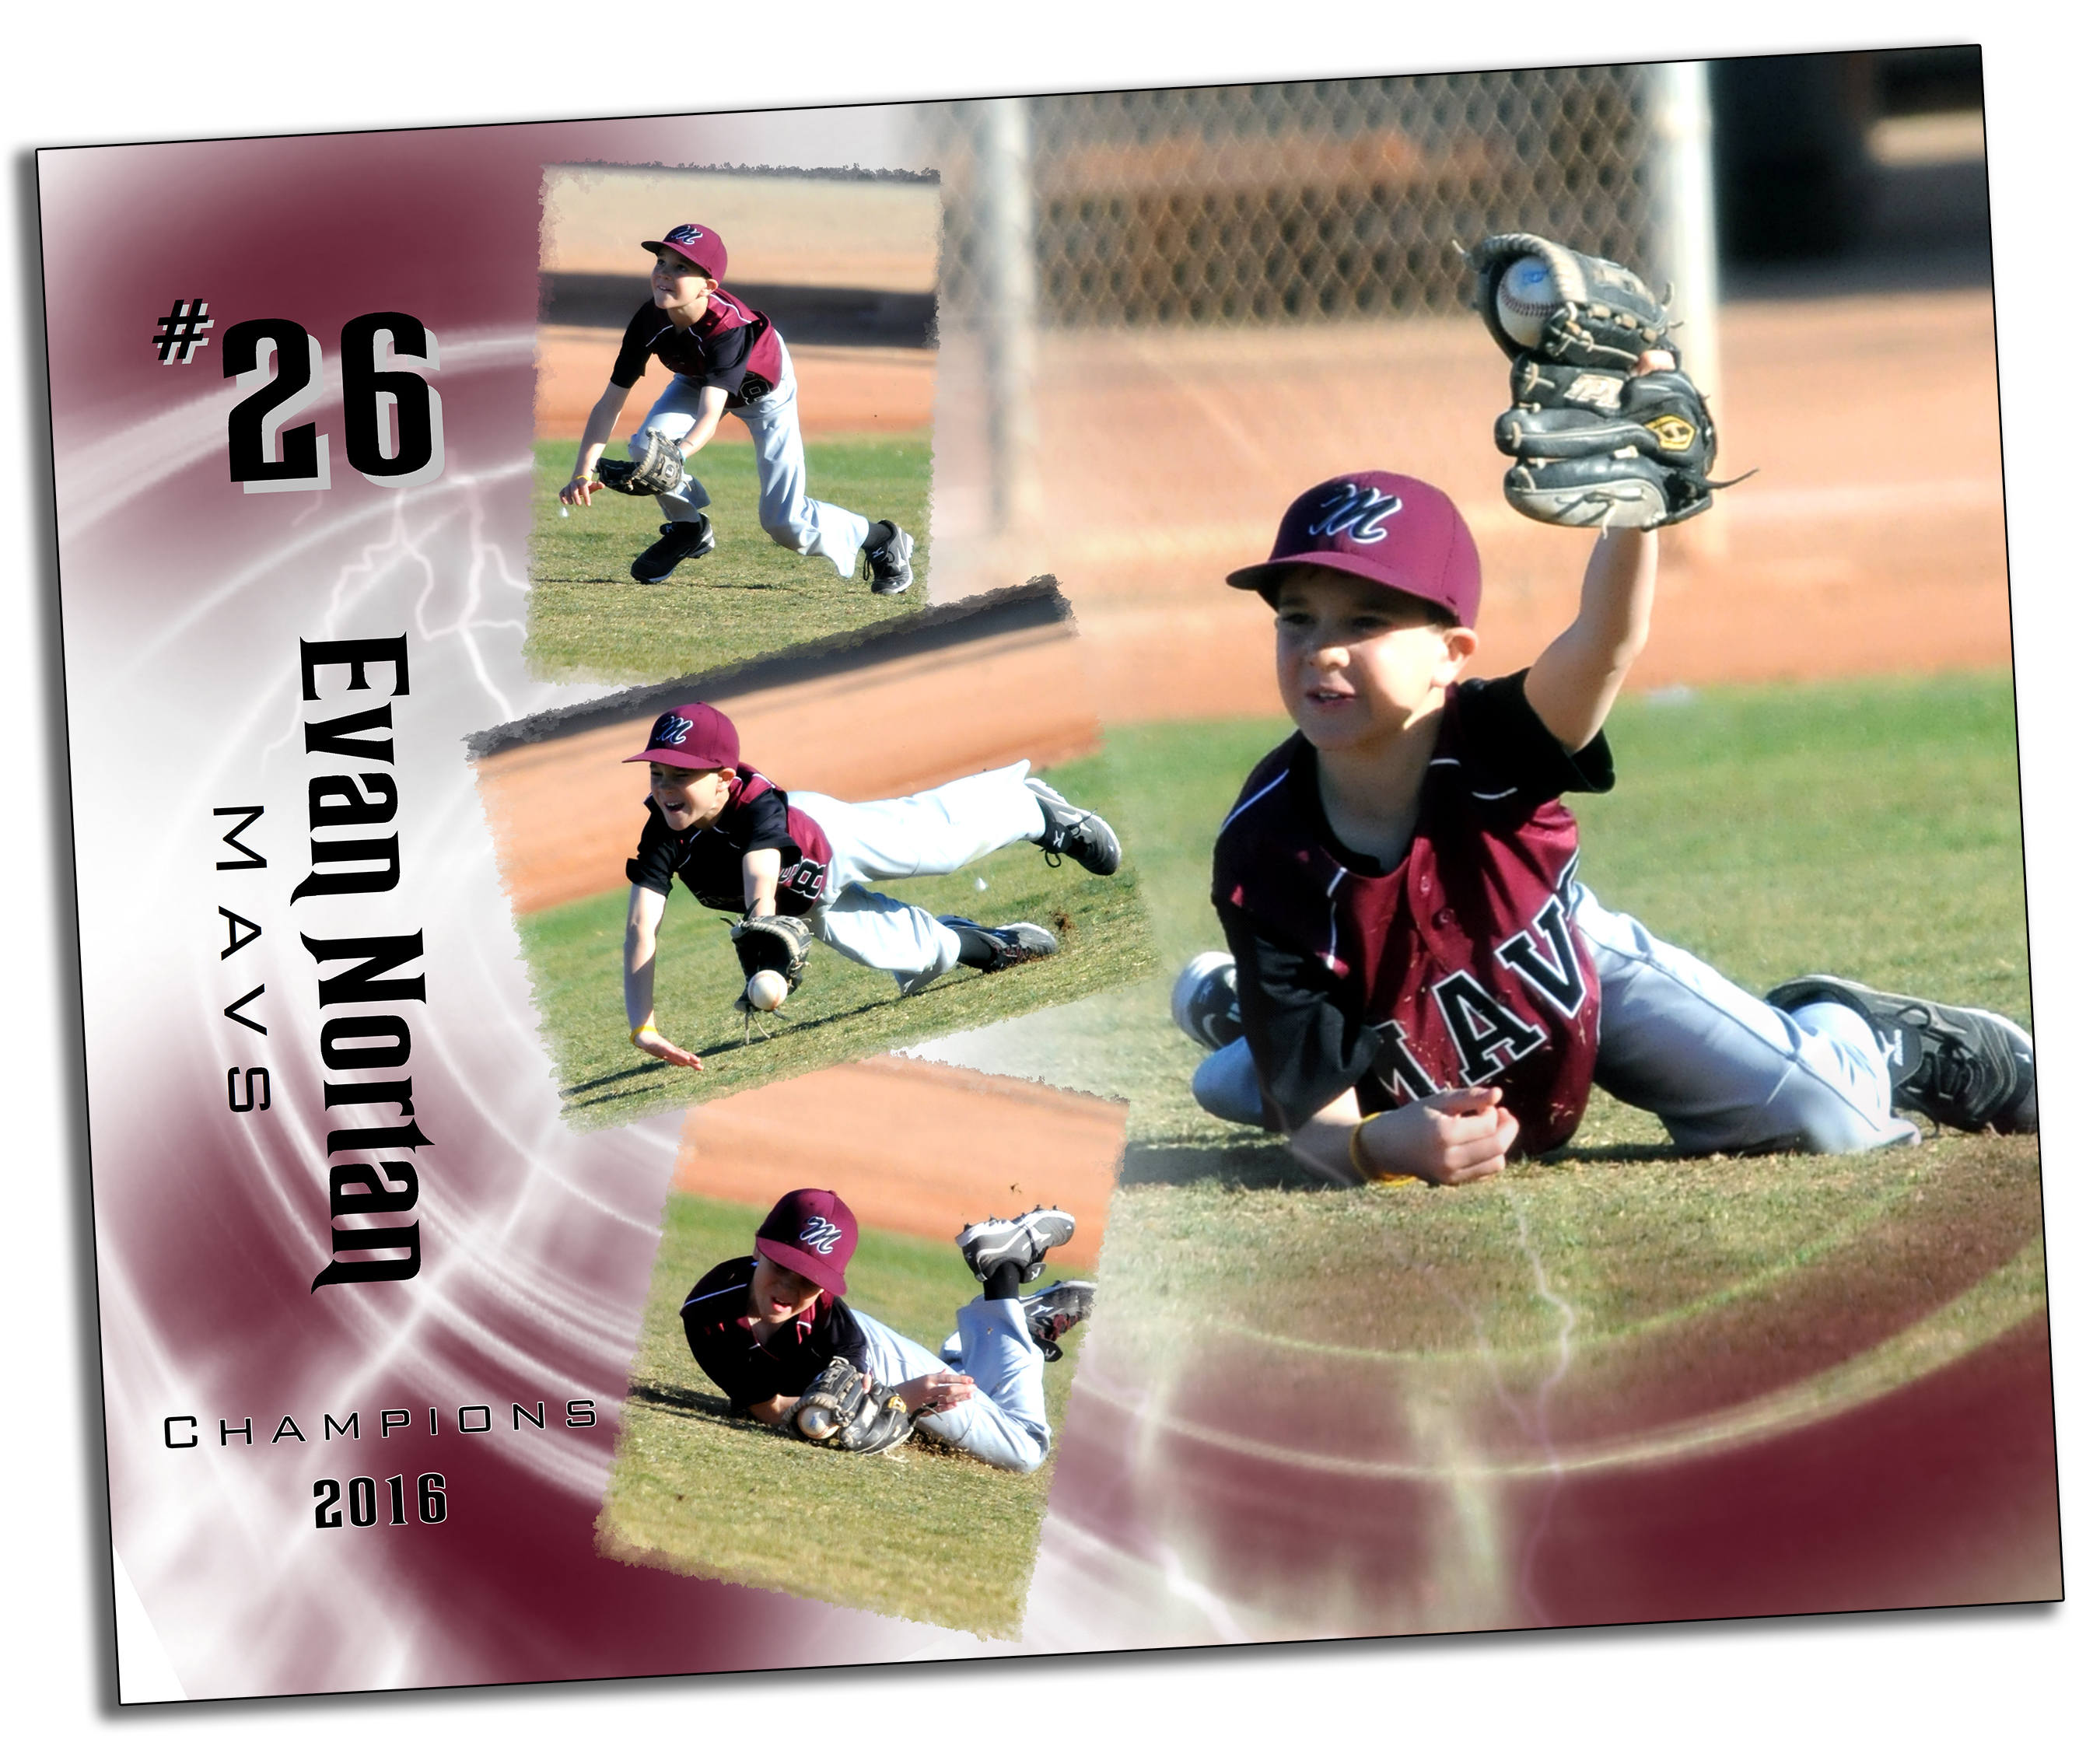 Action photography, photography, team, baseball, sports, kids, YSPN, Youth Sports Photography